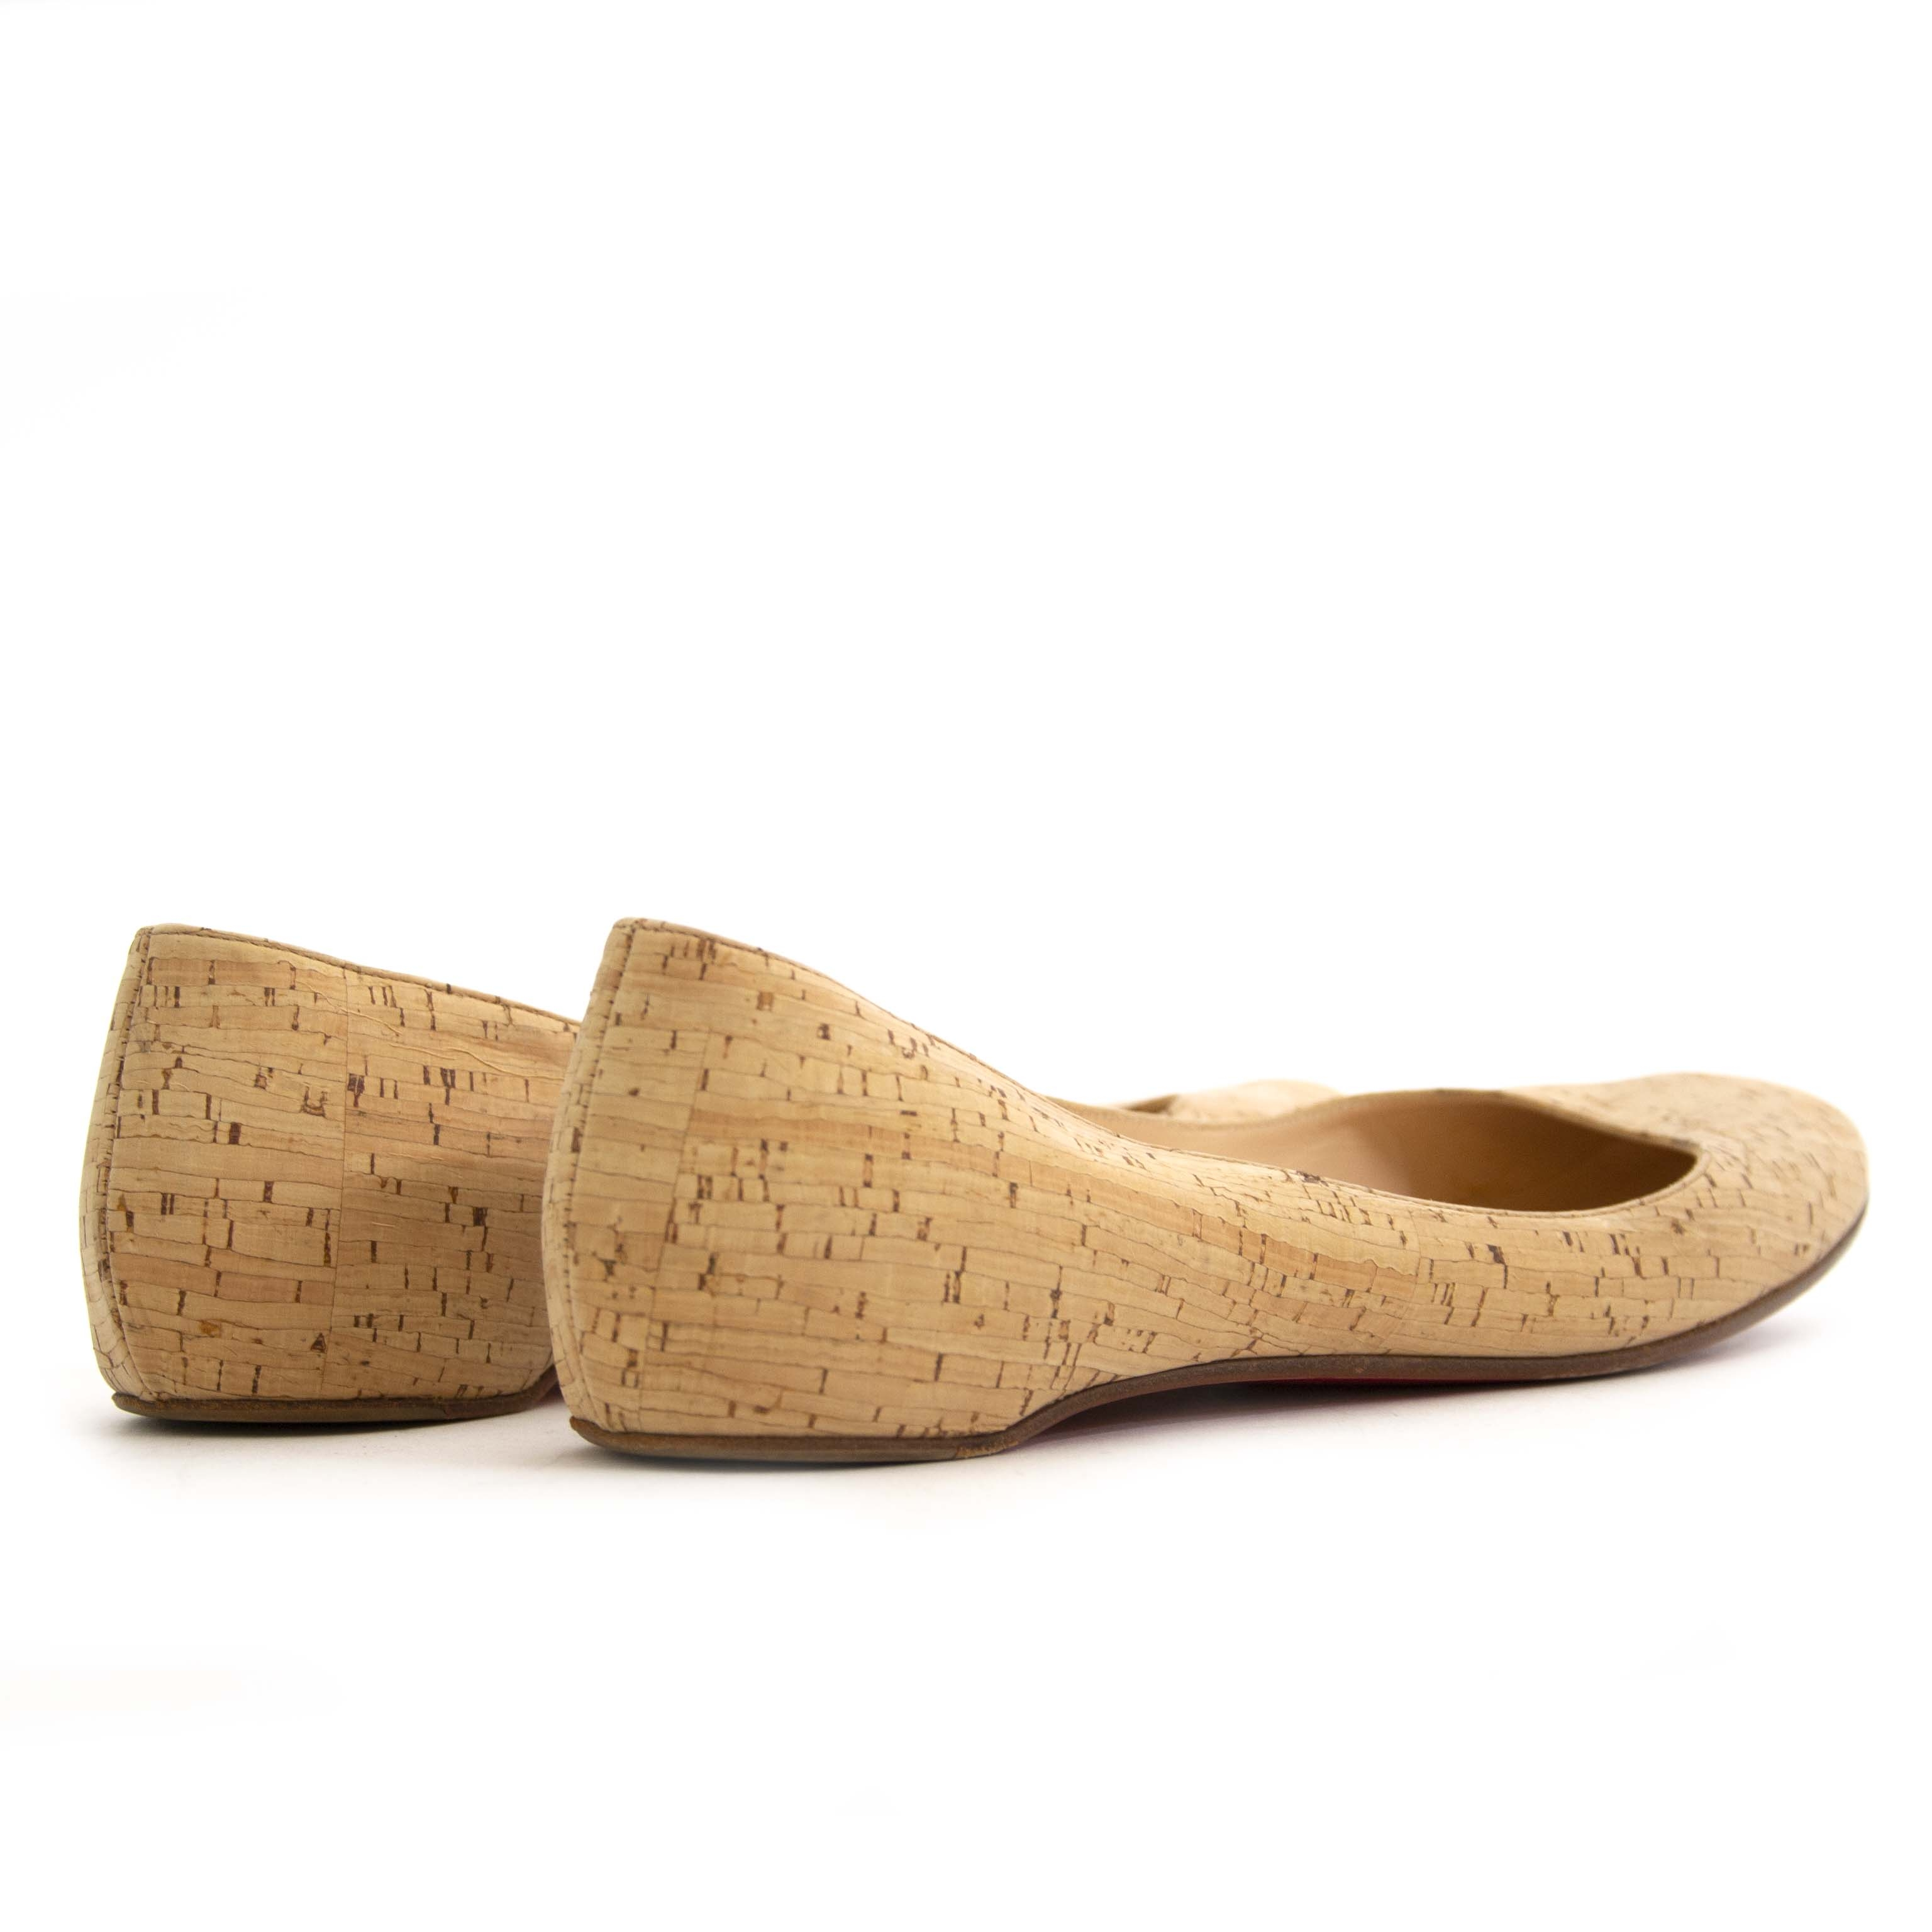 Louboutin Beige Natural Polished Cork Ballerina Flats - Size 38,5.  Now for sale at labellov.com for the best price. Op zoek naar Louboutin Cork Ballerina Flats? Nu te koop bij labellov.com tegen de beste prijs.